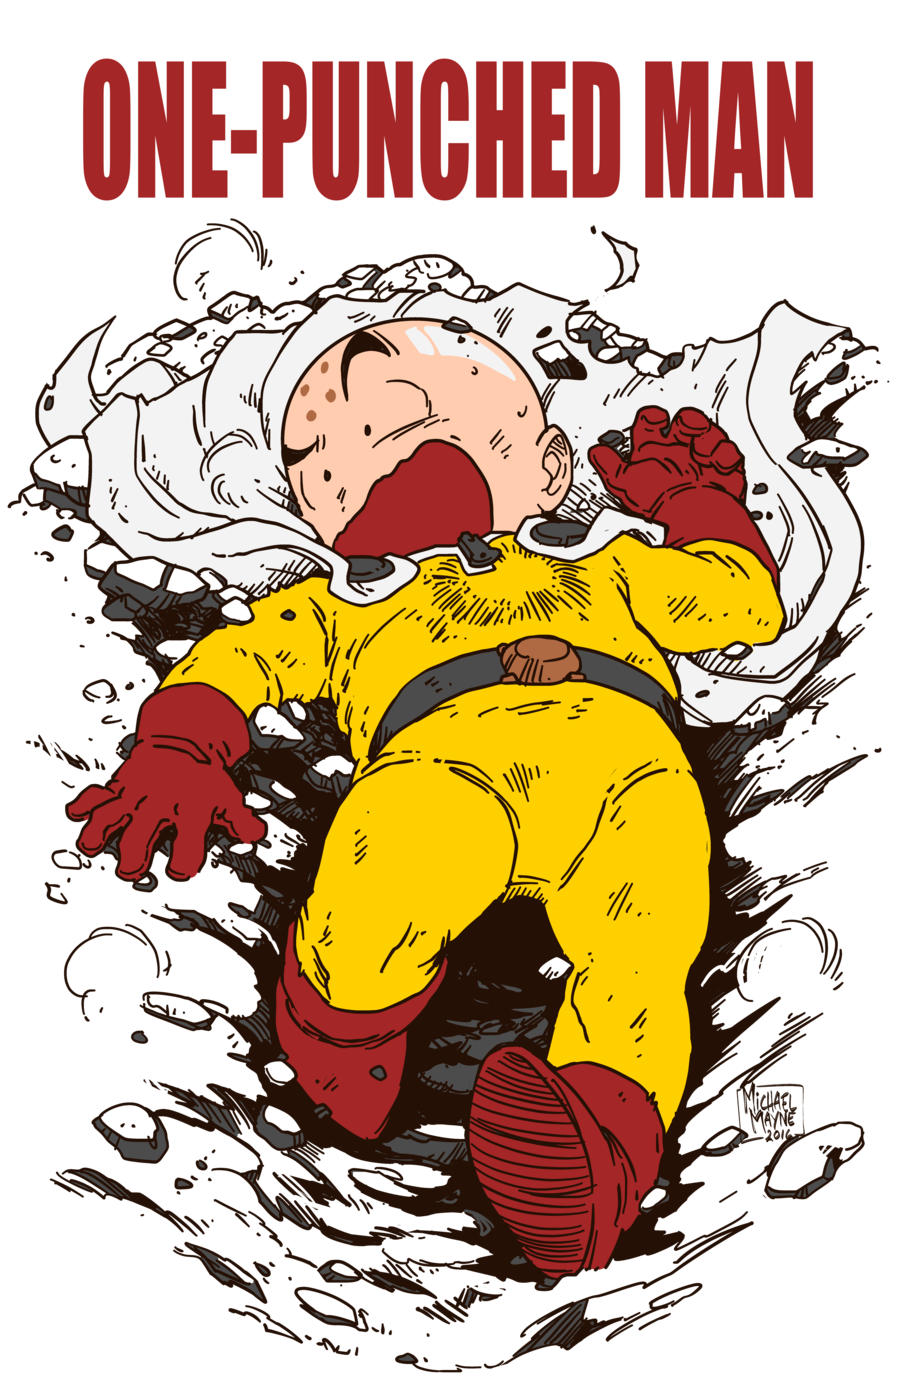 one-punched-man-krillin-saitama-by-michaelmayne